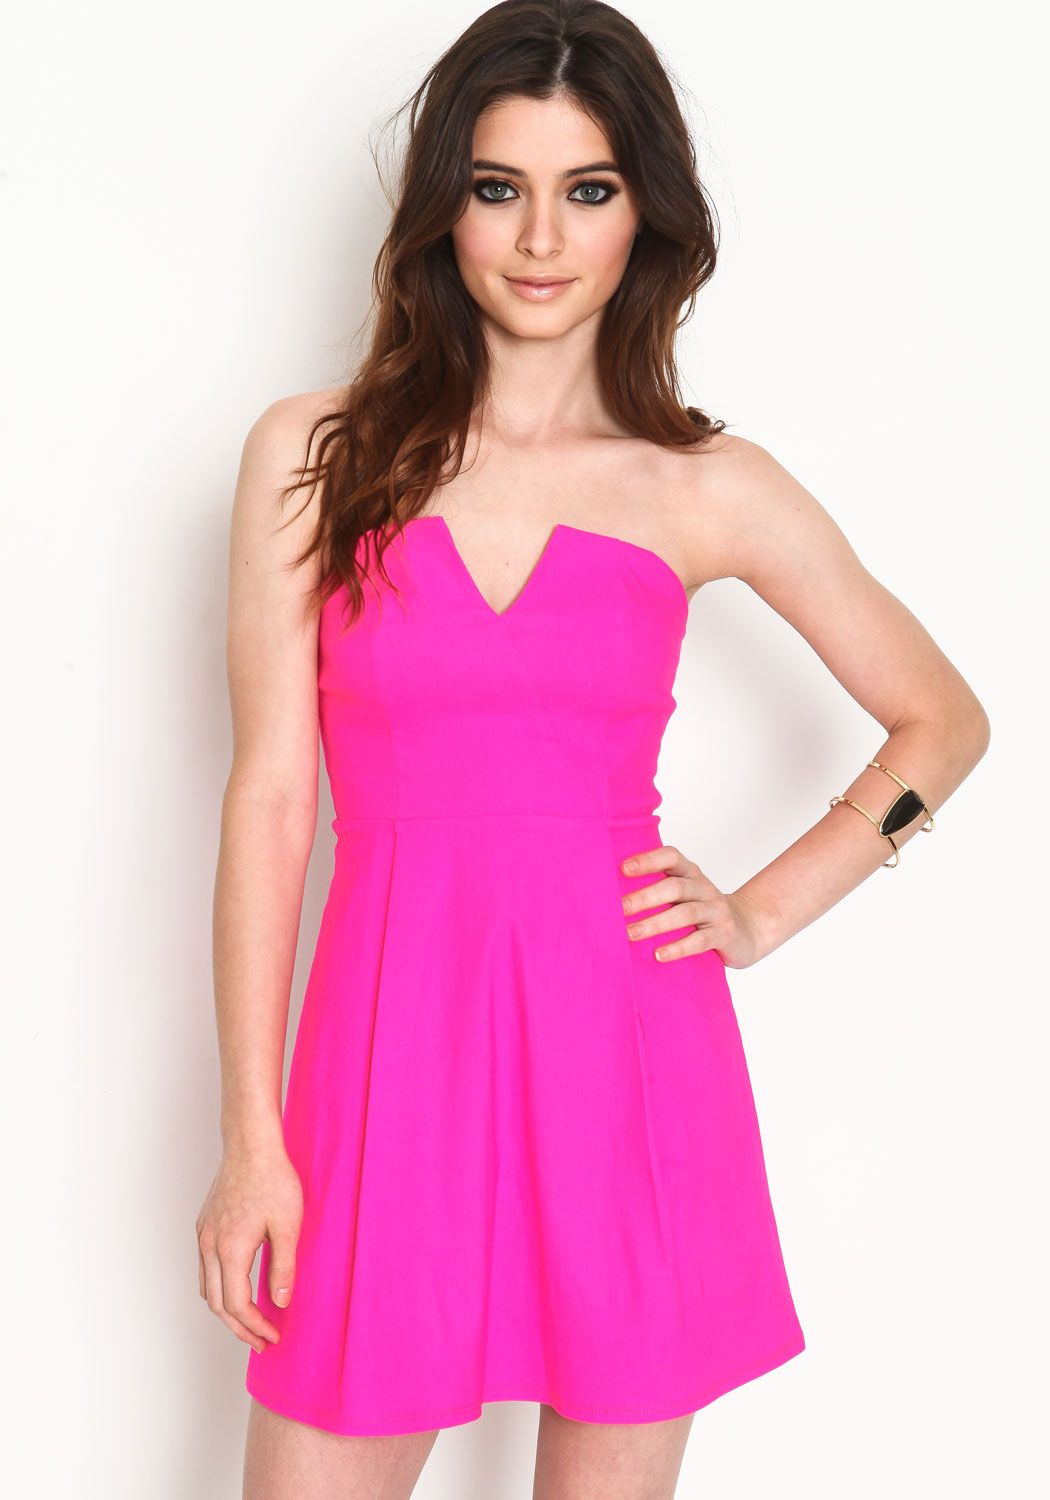 STRAPLESS V CUT OUT DRESS | ModMint -Fashionable young women's clothing